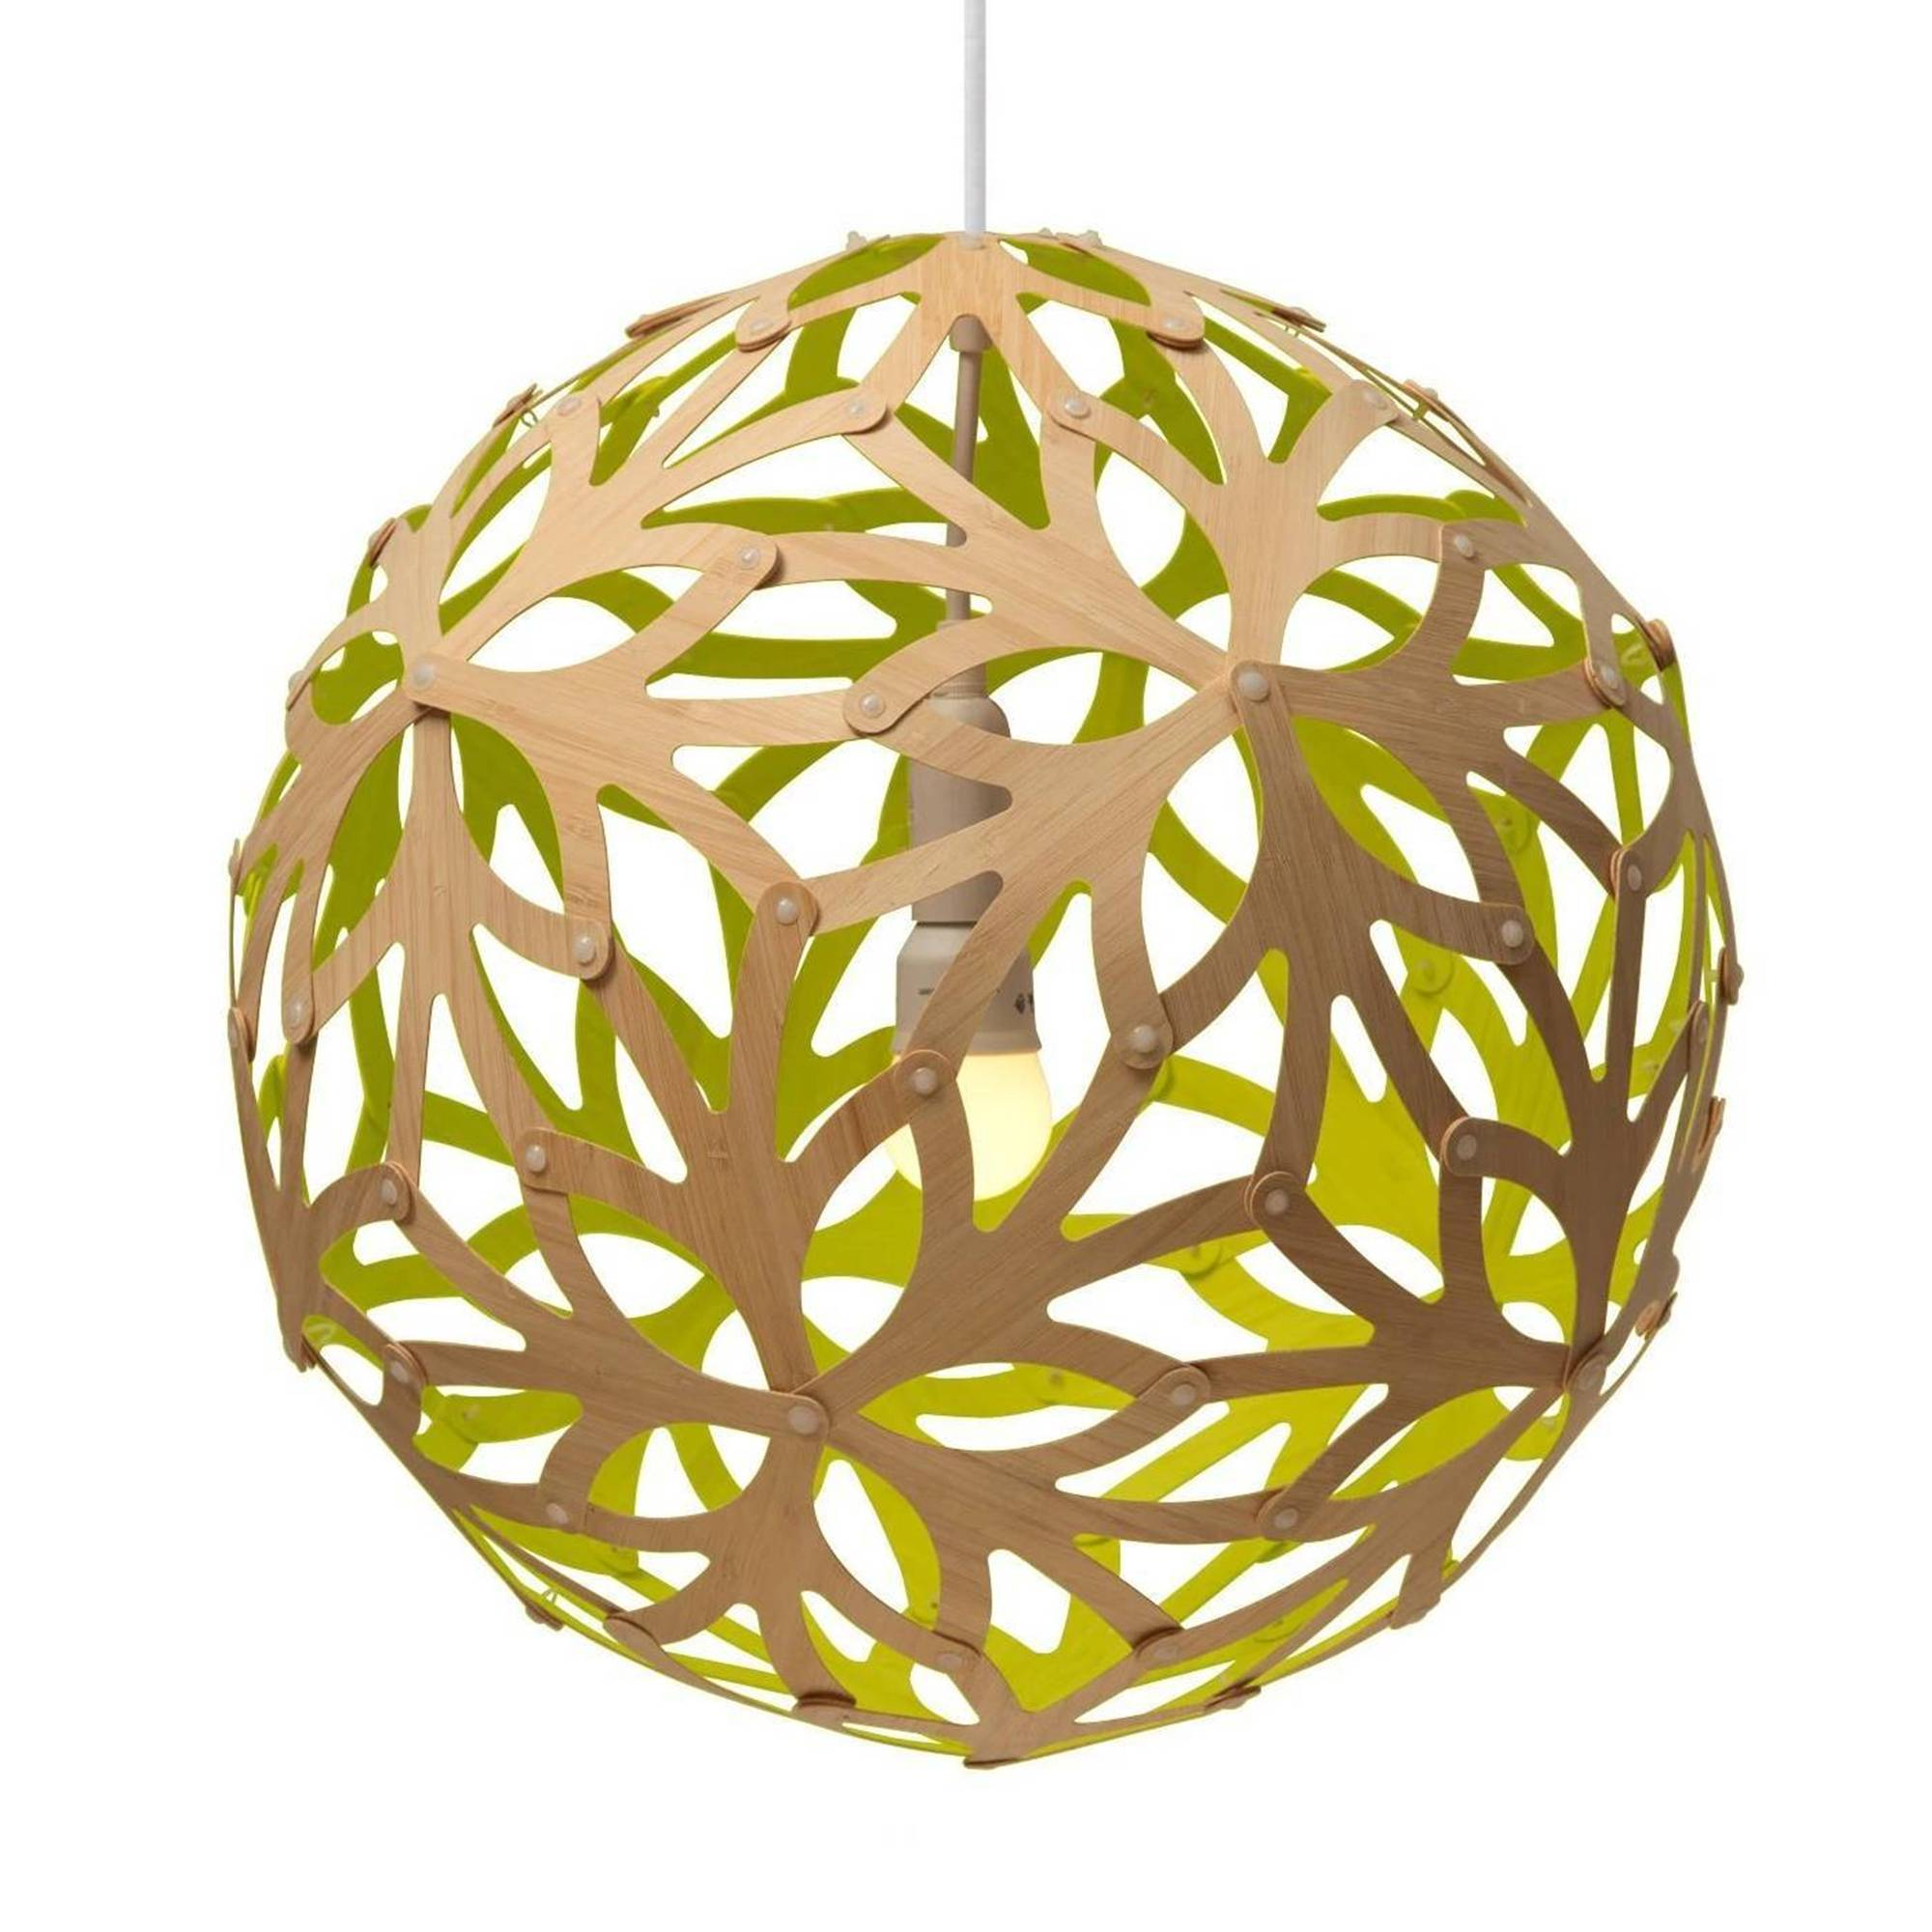 Floral Pendant Light: 1200 + Lime